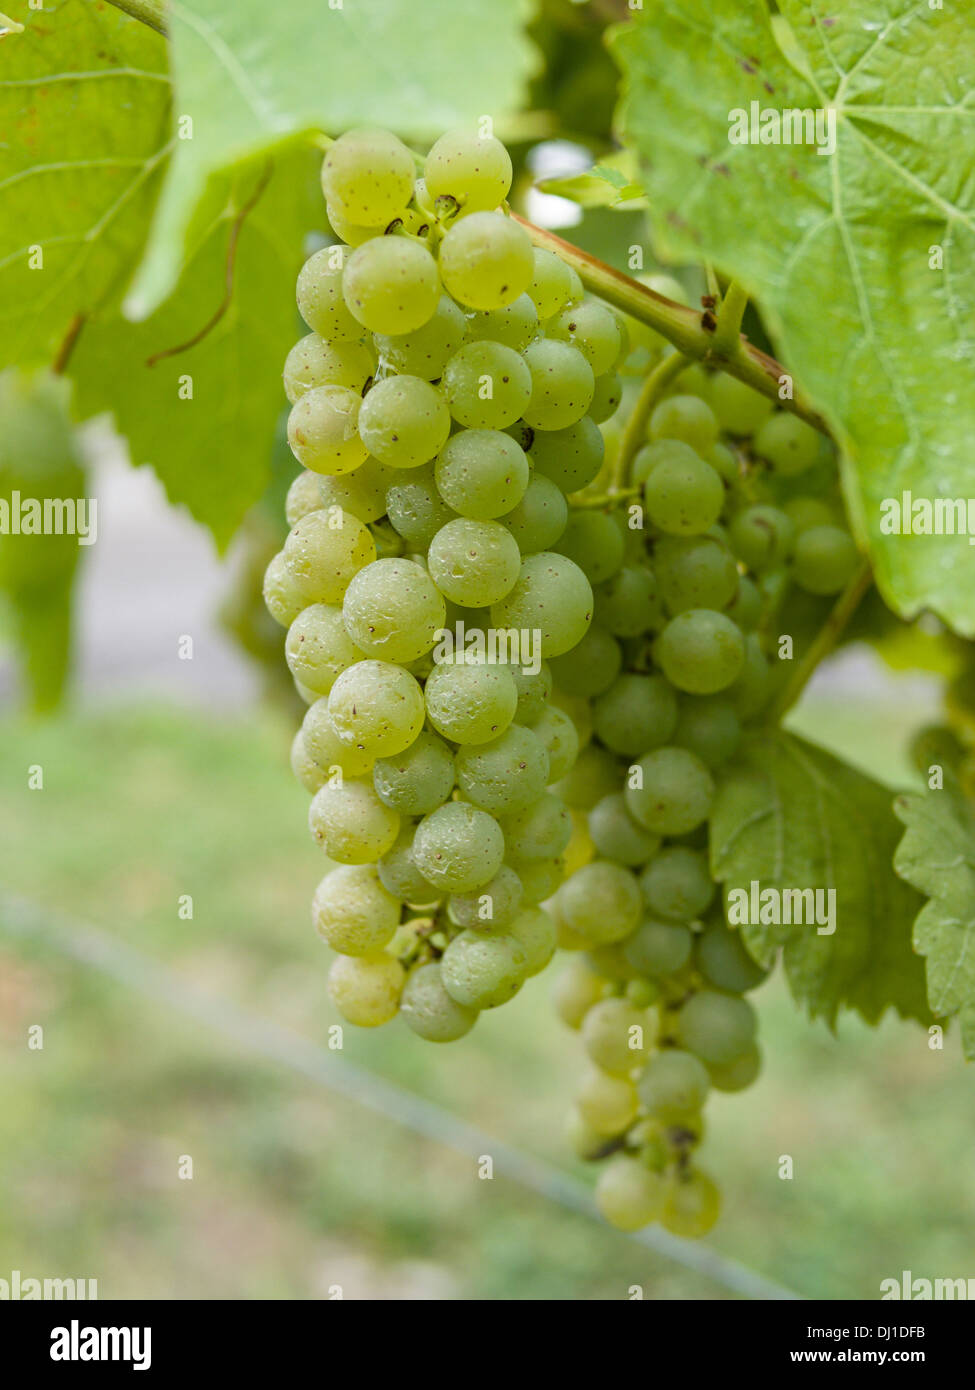 A bunch of Vidal Grapes on the vine. Vidal grapes are a common variety grown in Prince Edward County. - Stock Image